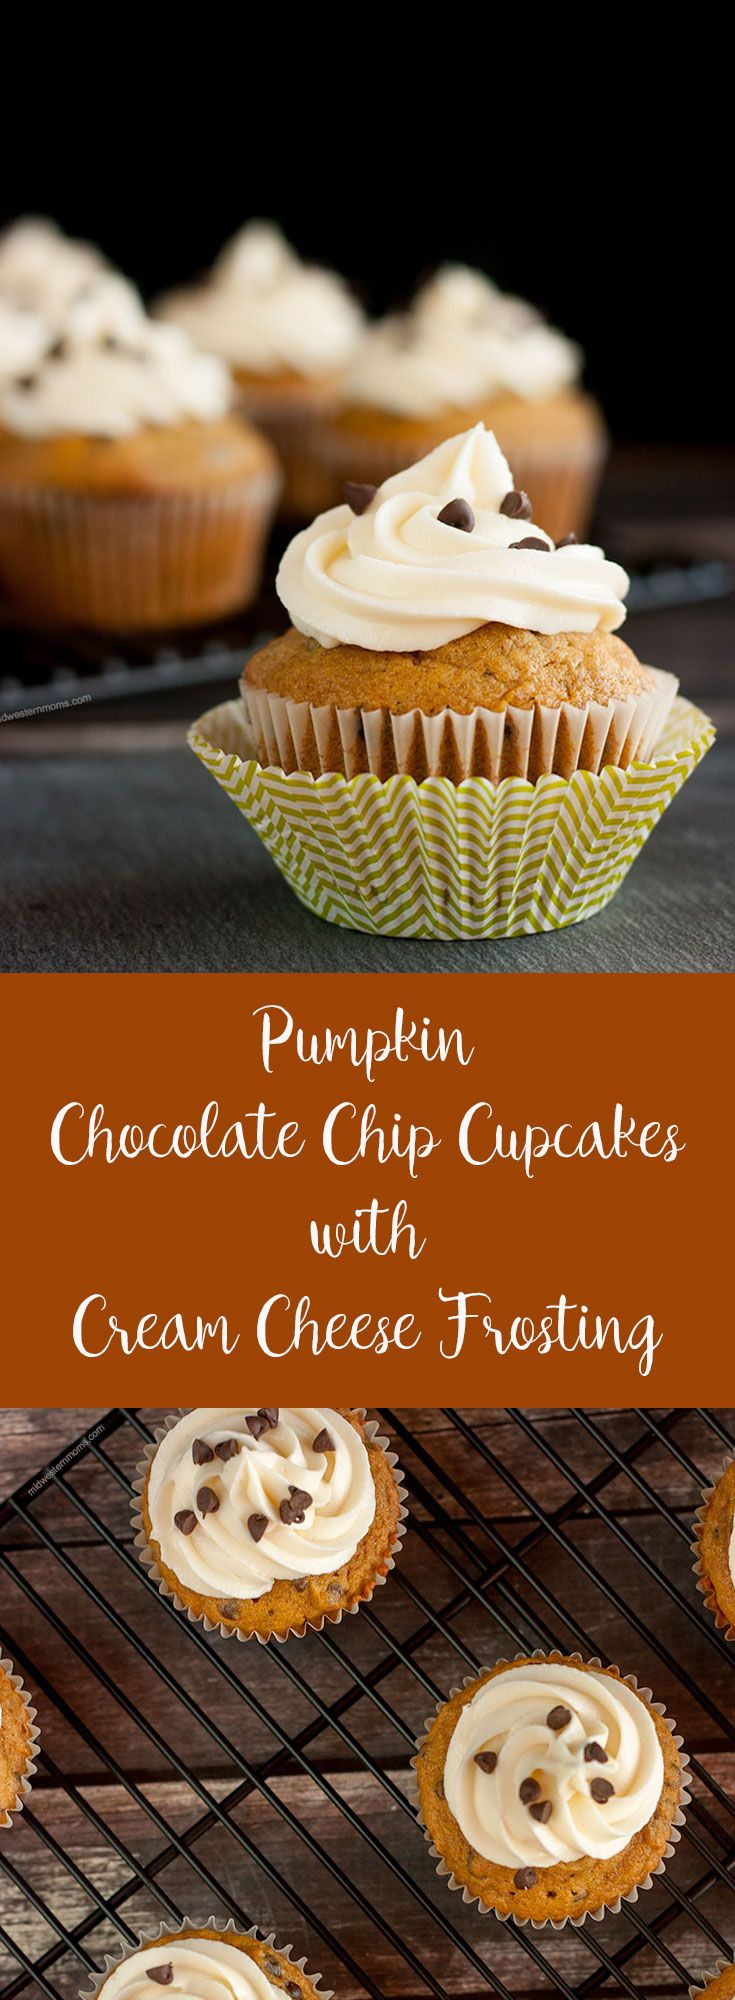 A delicious Fall treat: Pumpkin chocolate chip cupcakes with homemade cream cheese frosting.